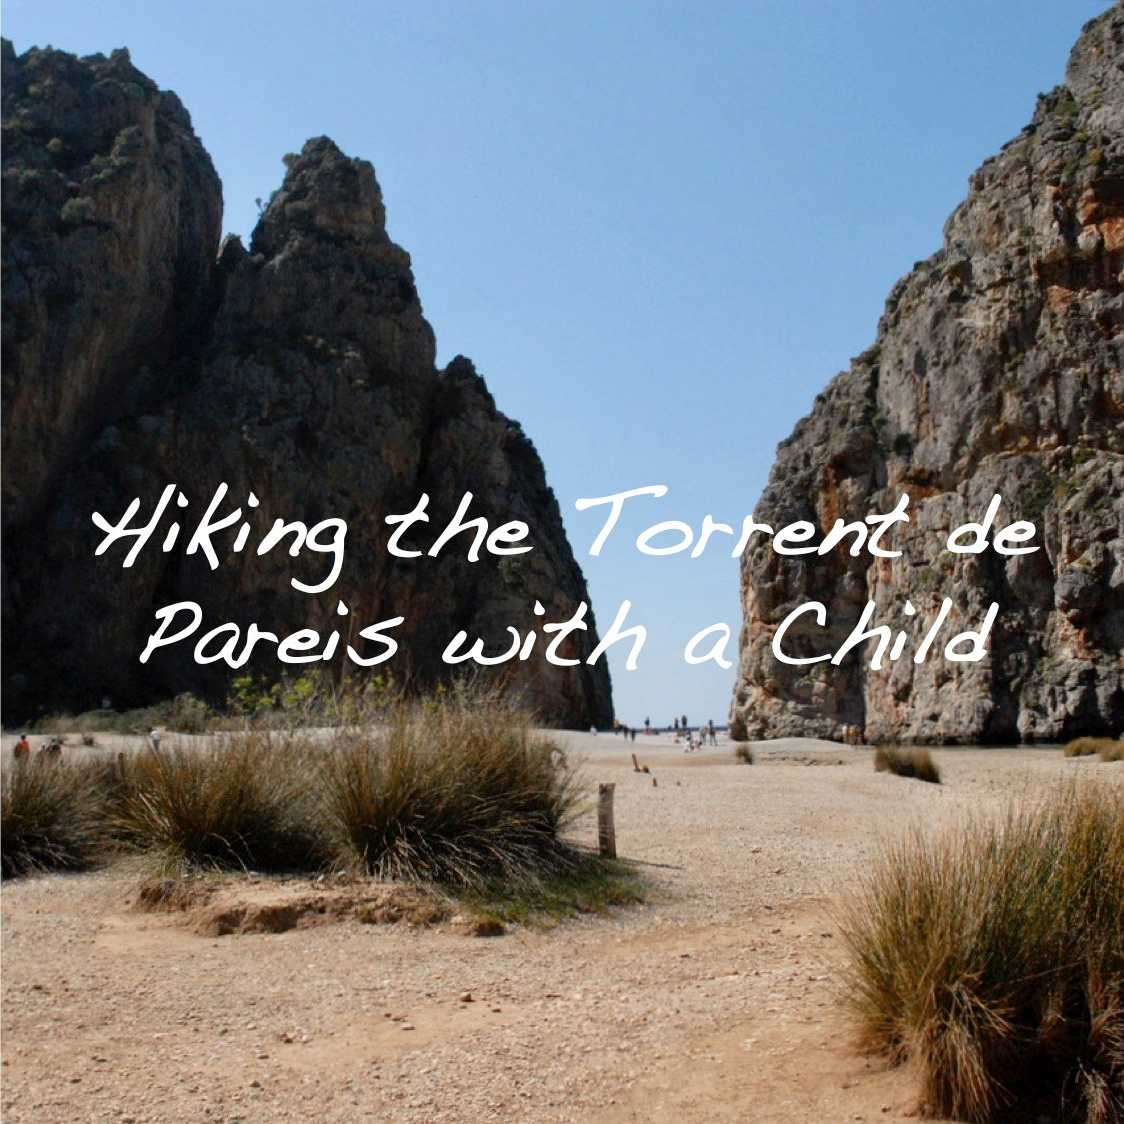 Torrent de Pareis, Mallorca, Spain | Hiking the Torrent de Pareis with a Child